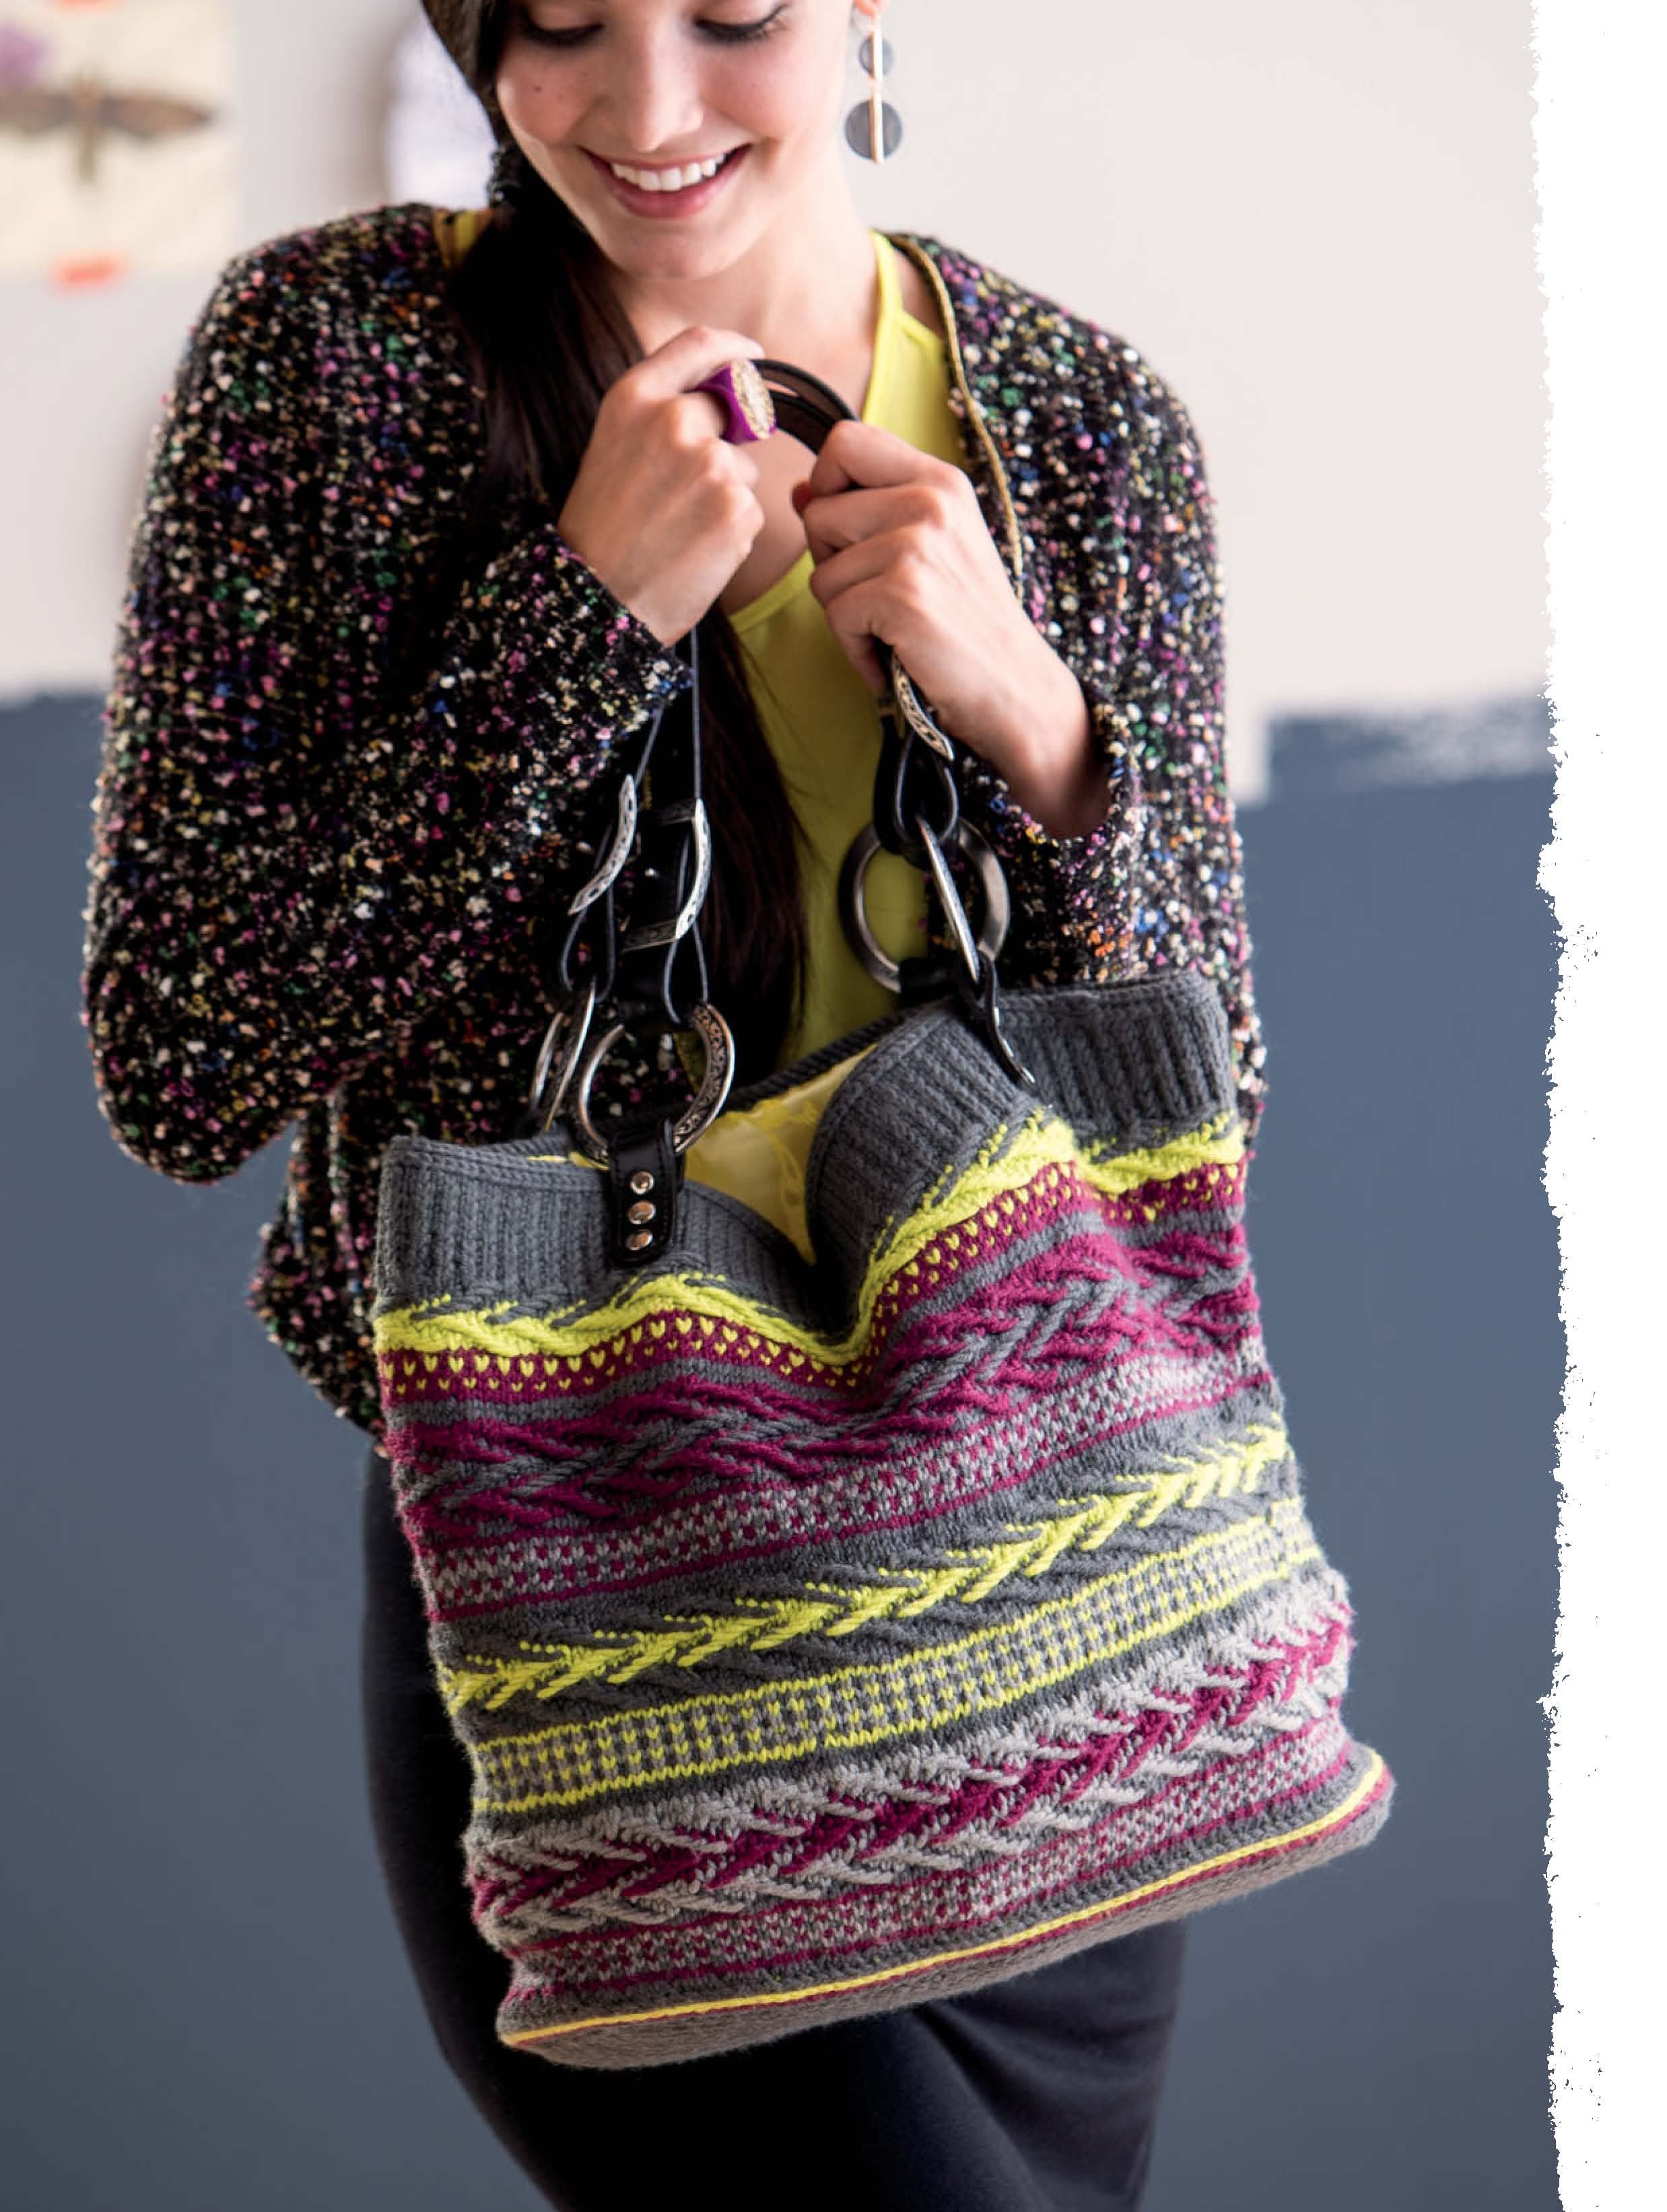 The Art of Slip-Stitch Knitting - Gobelen Bag beauty image